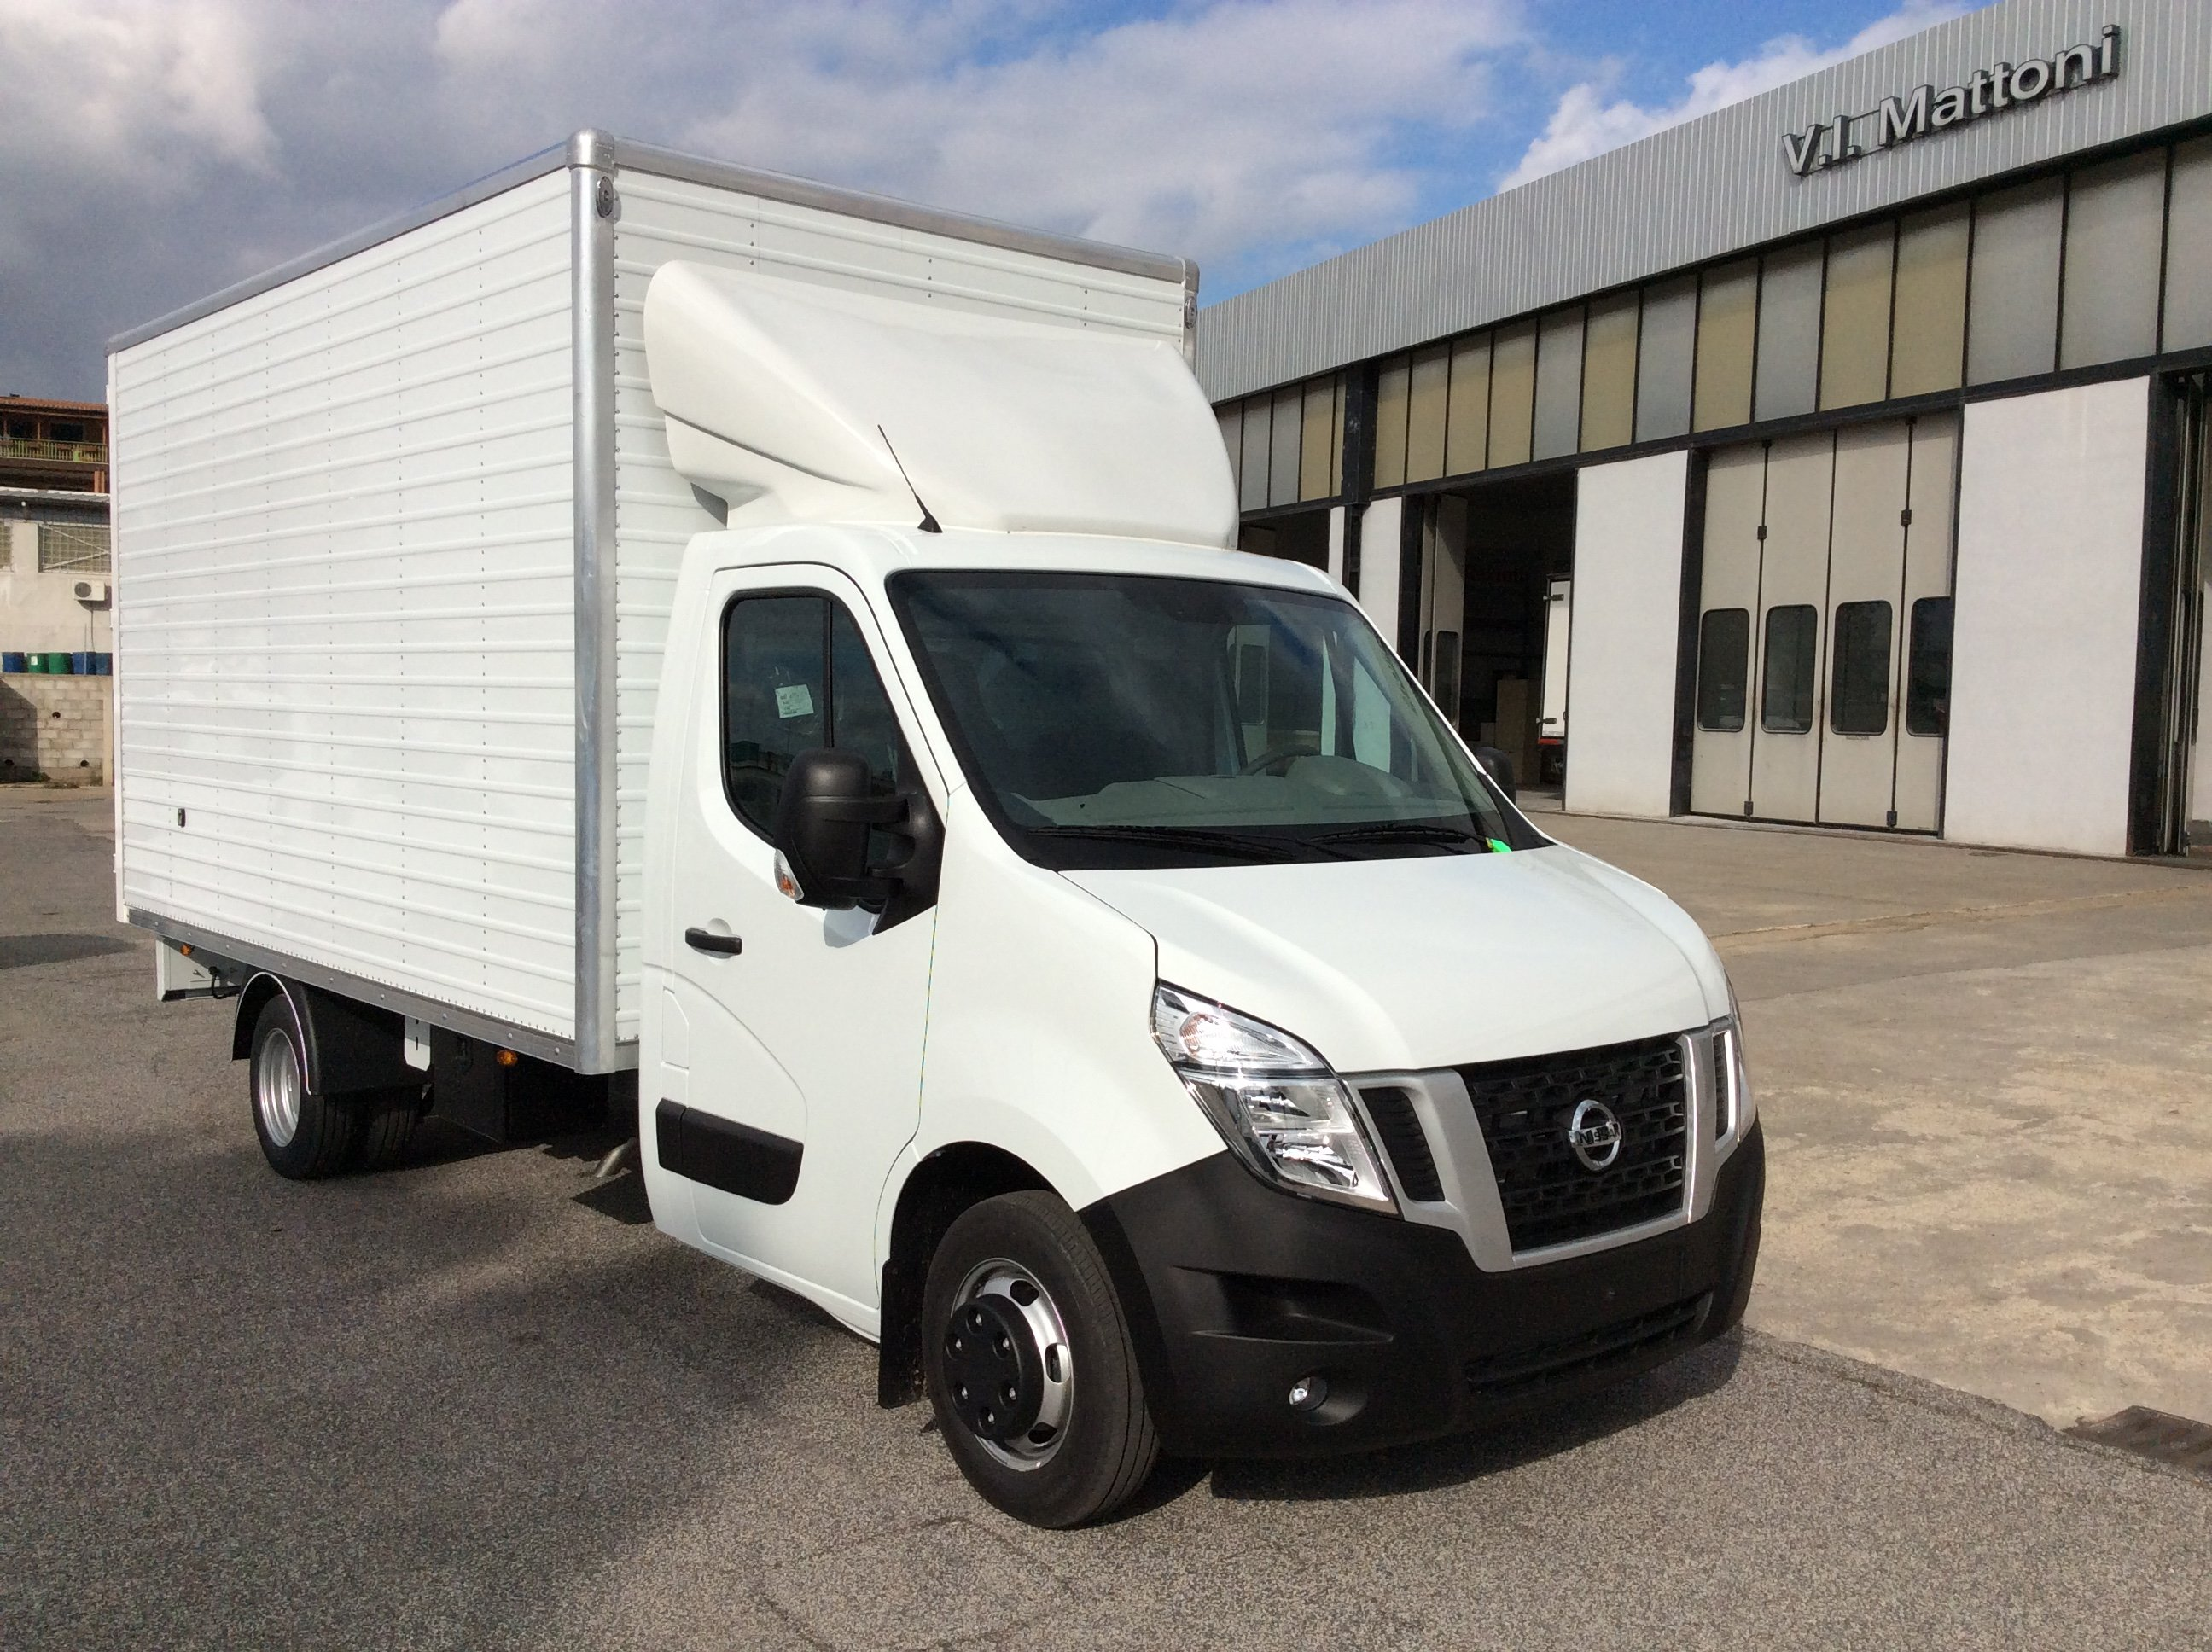 vista frontale camion